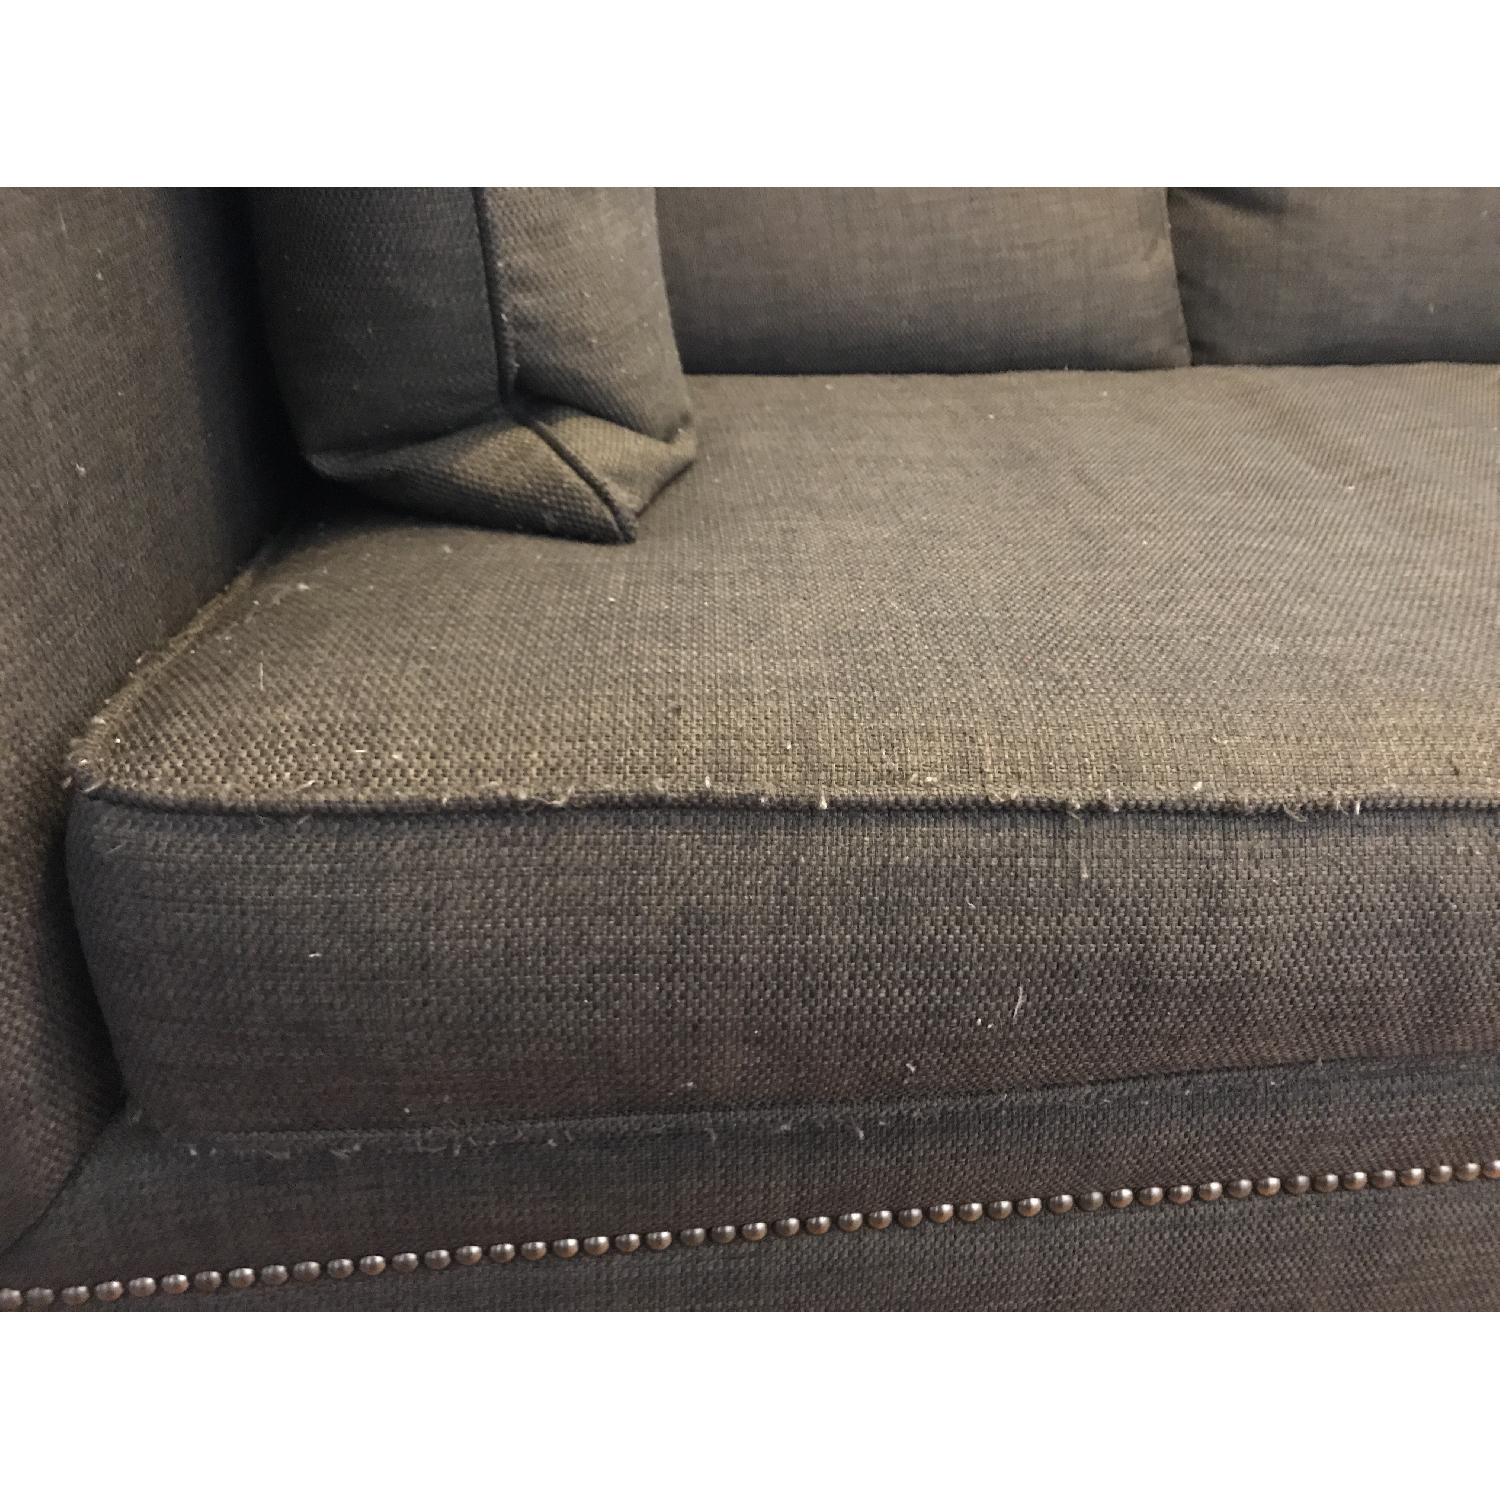 Crate & Barrel 3 Seater Down Filled Sofa - image-10